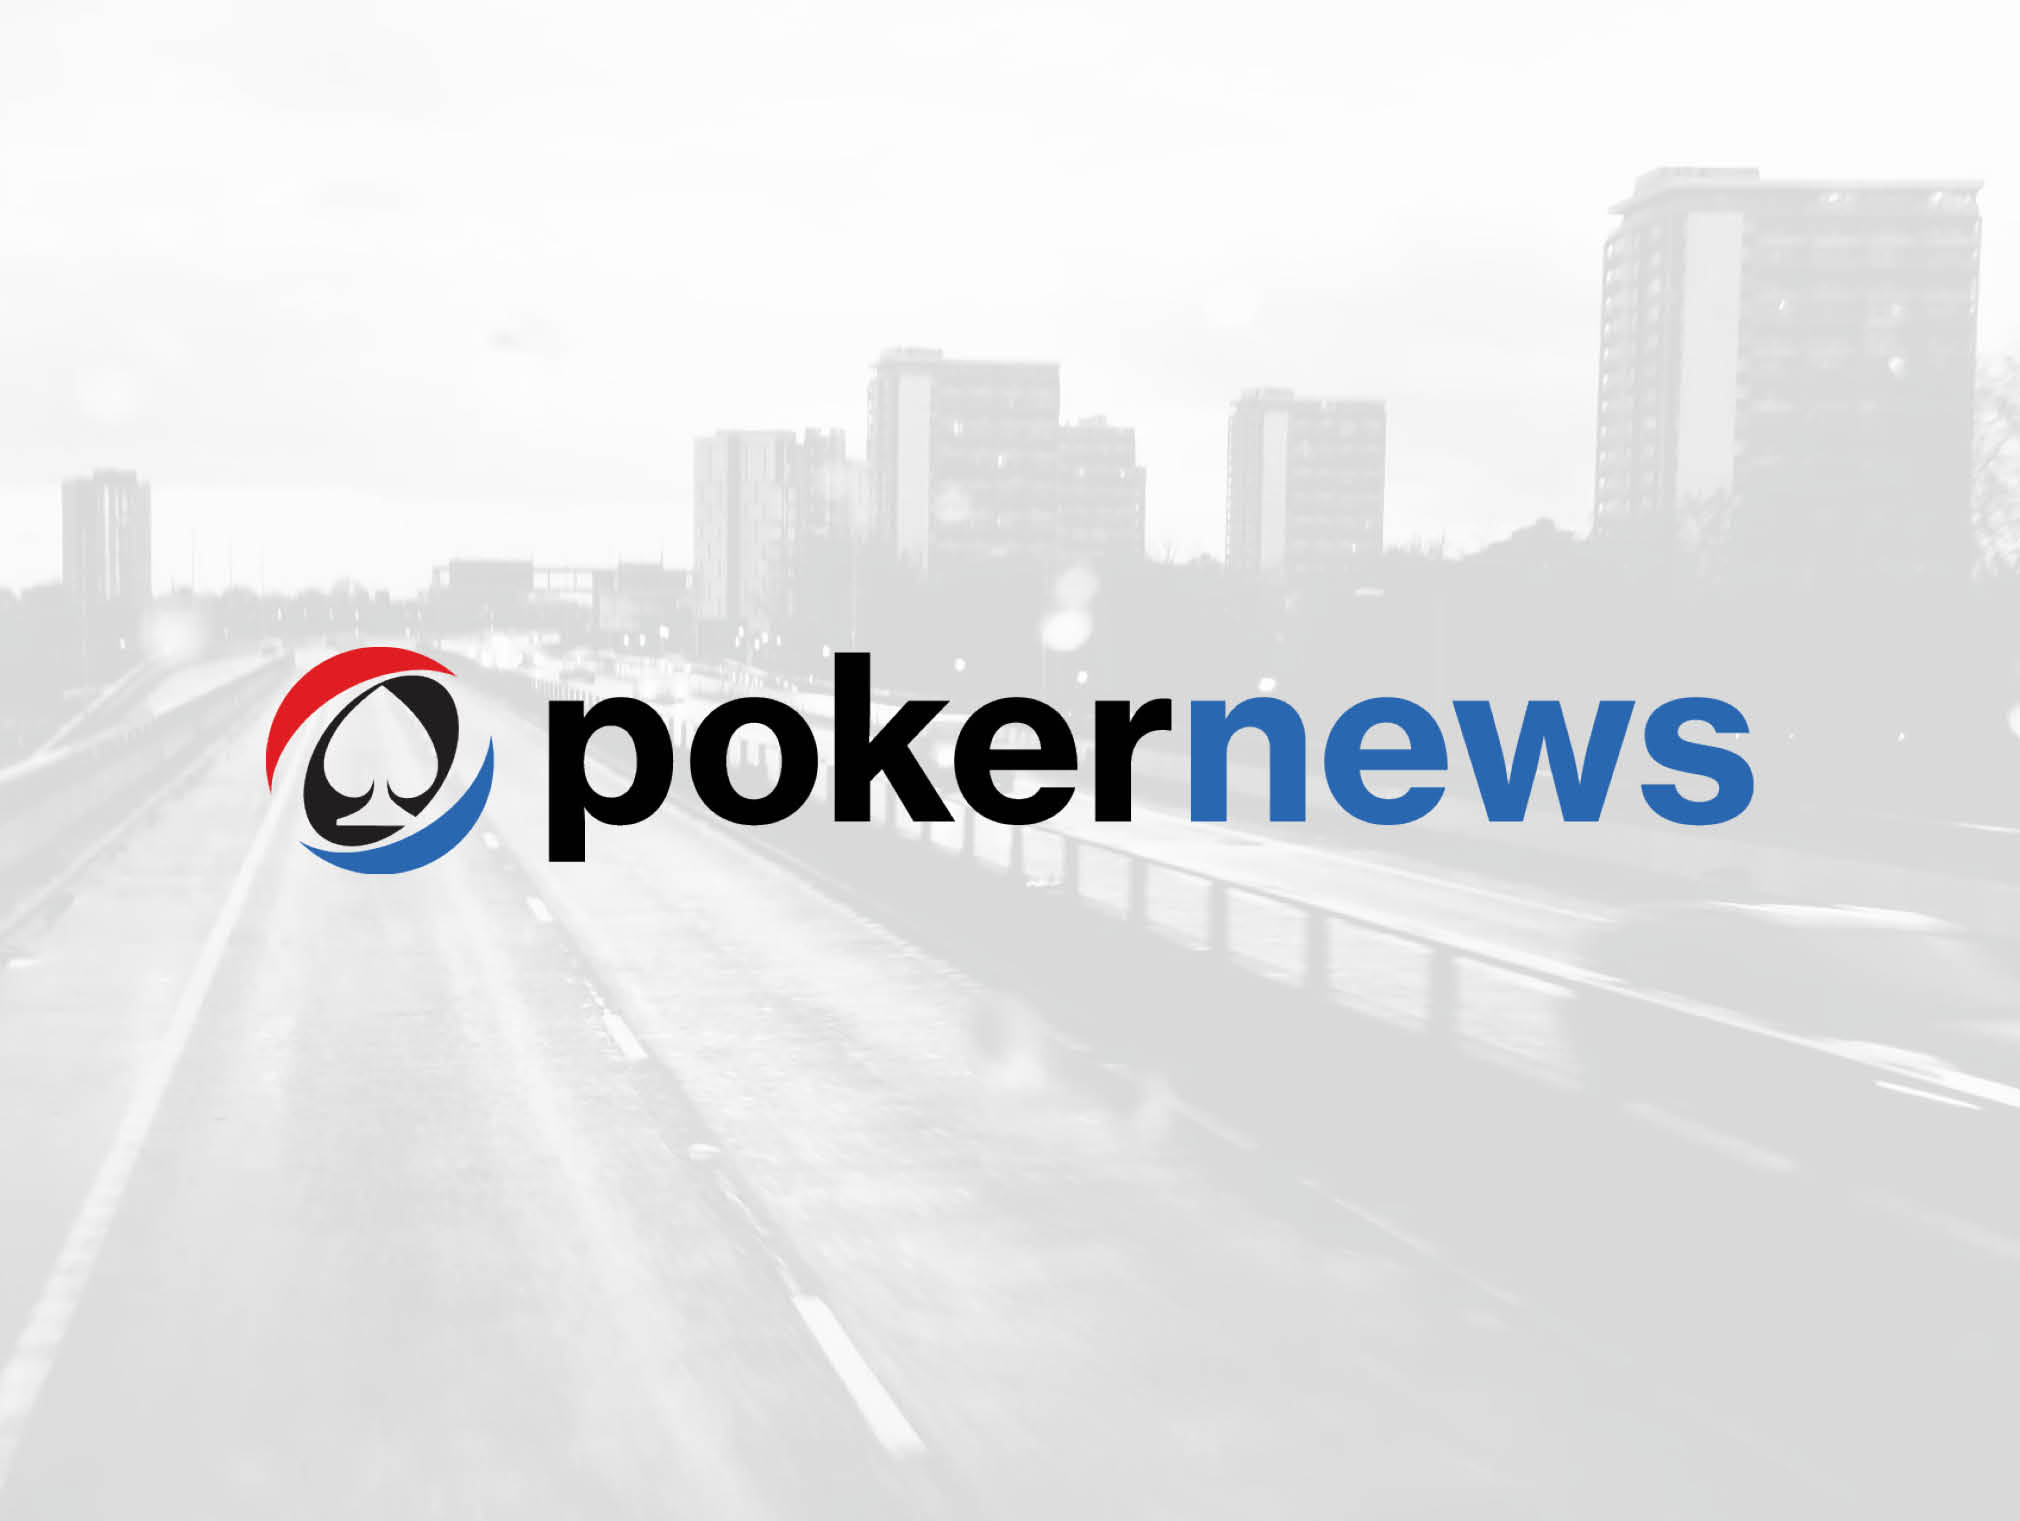 Pokernews.nl